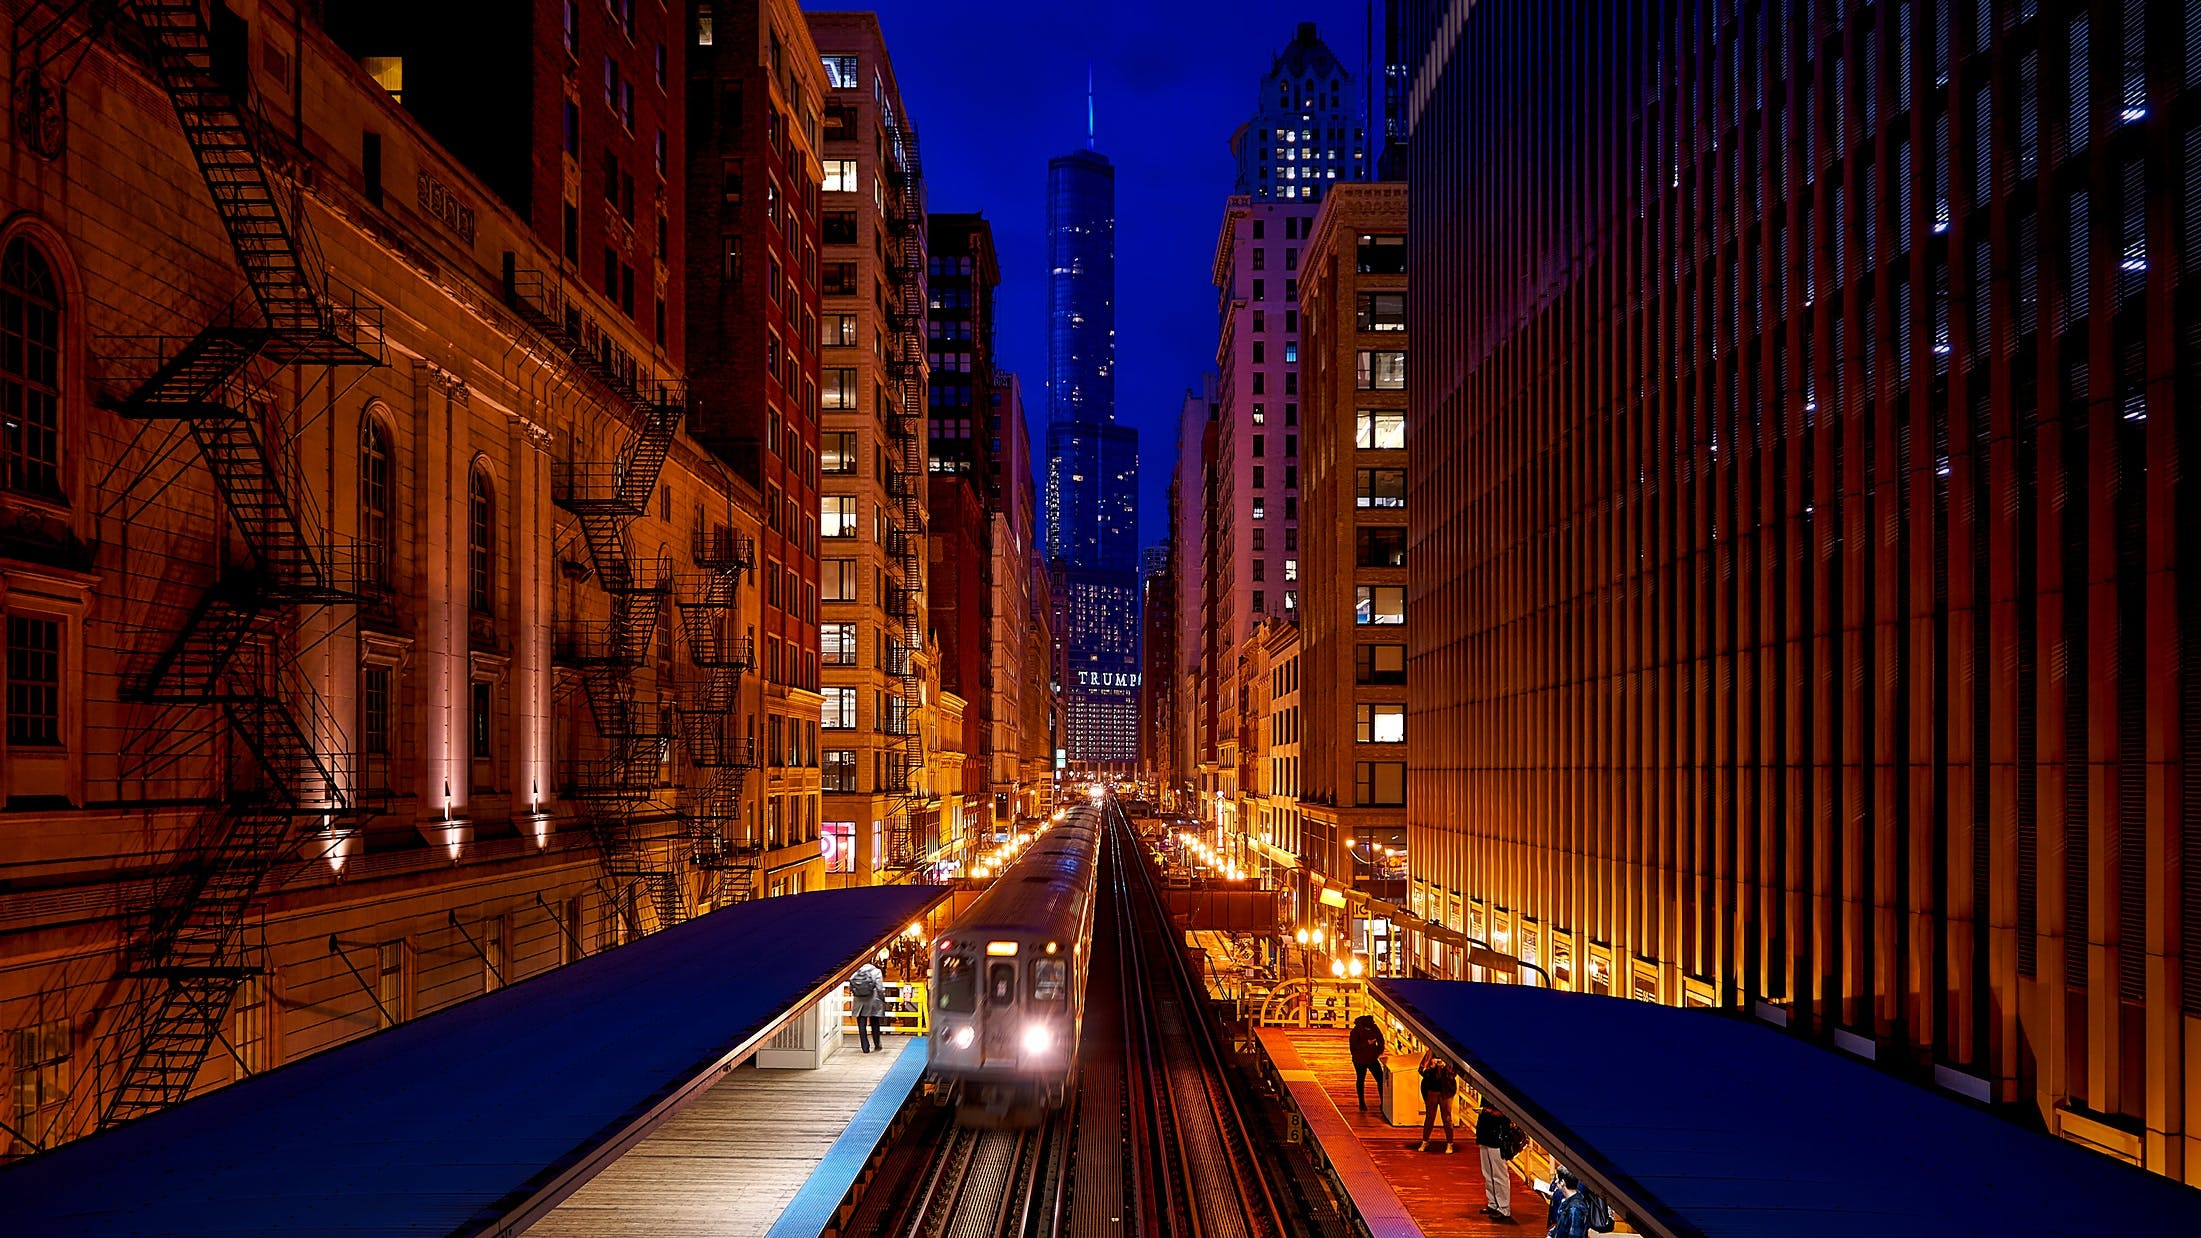 Train Station during Night Time